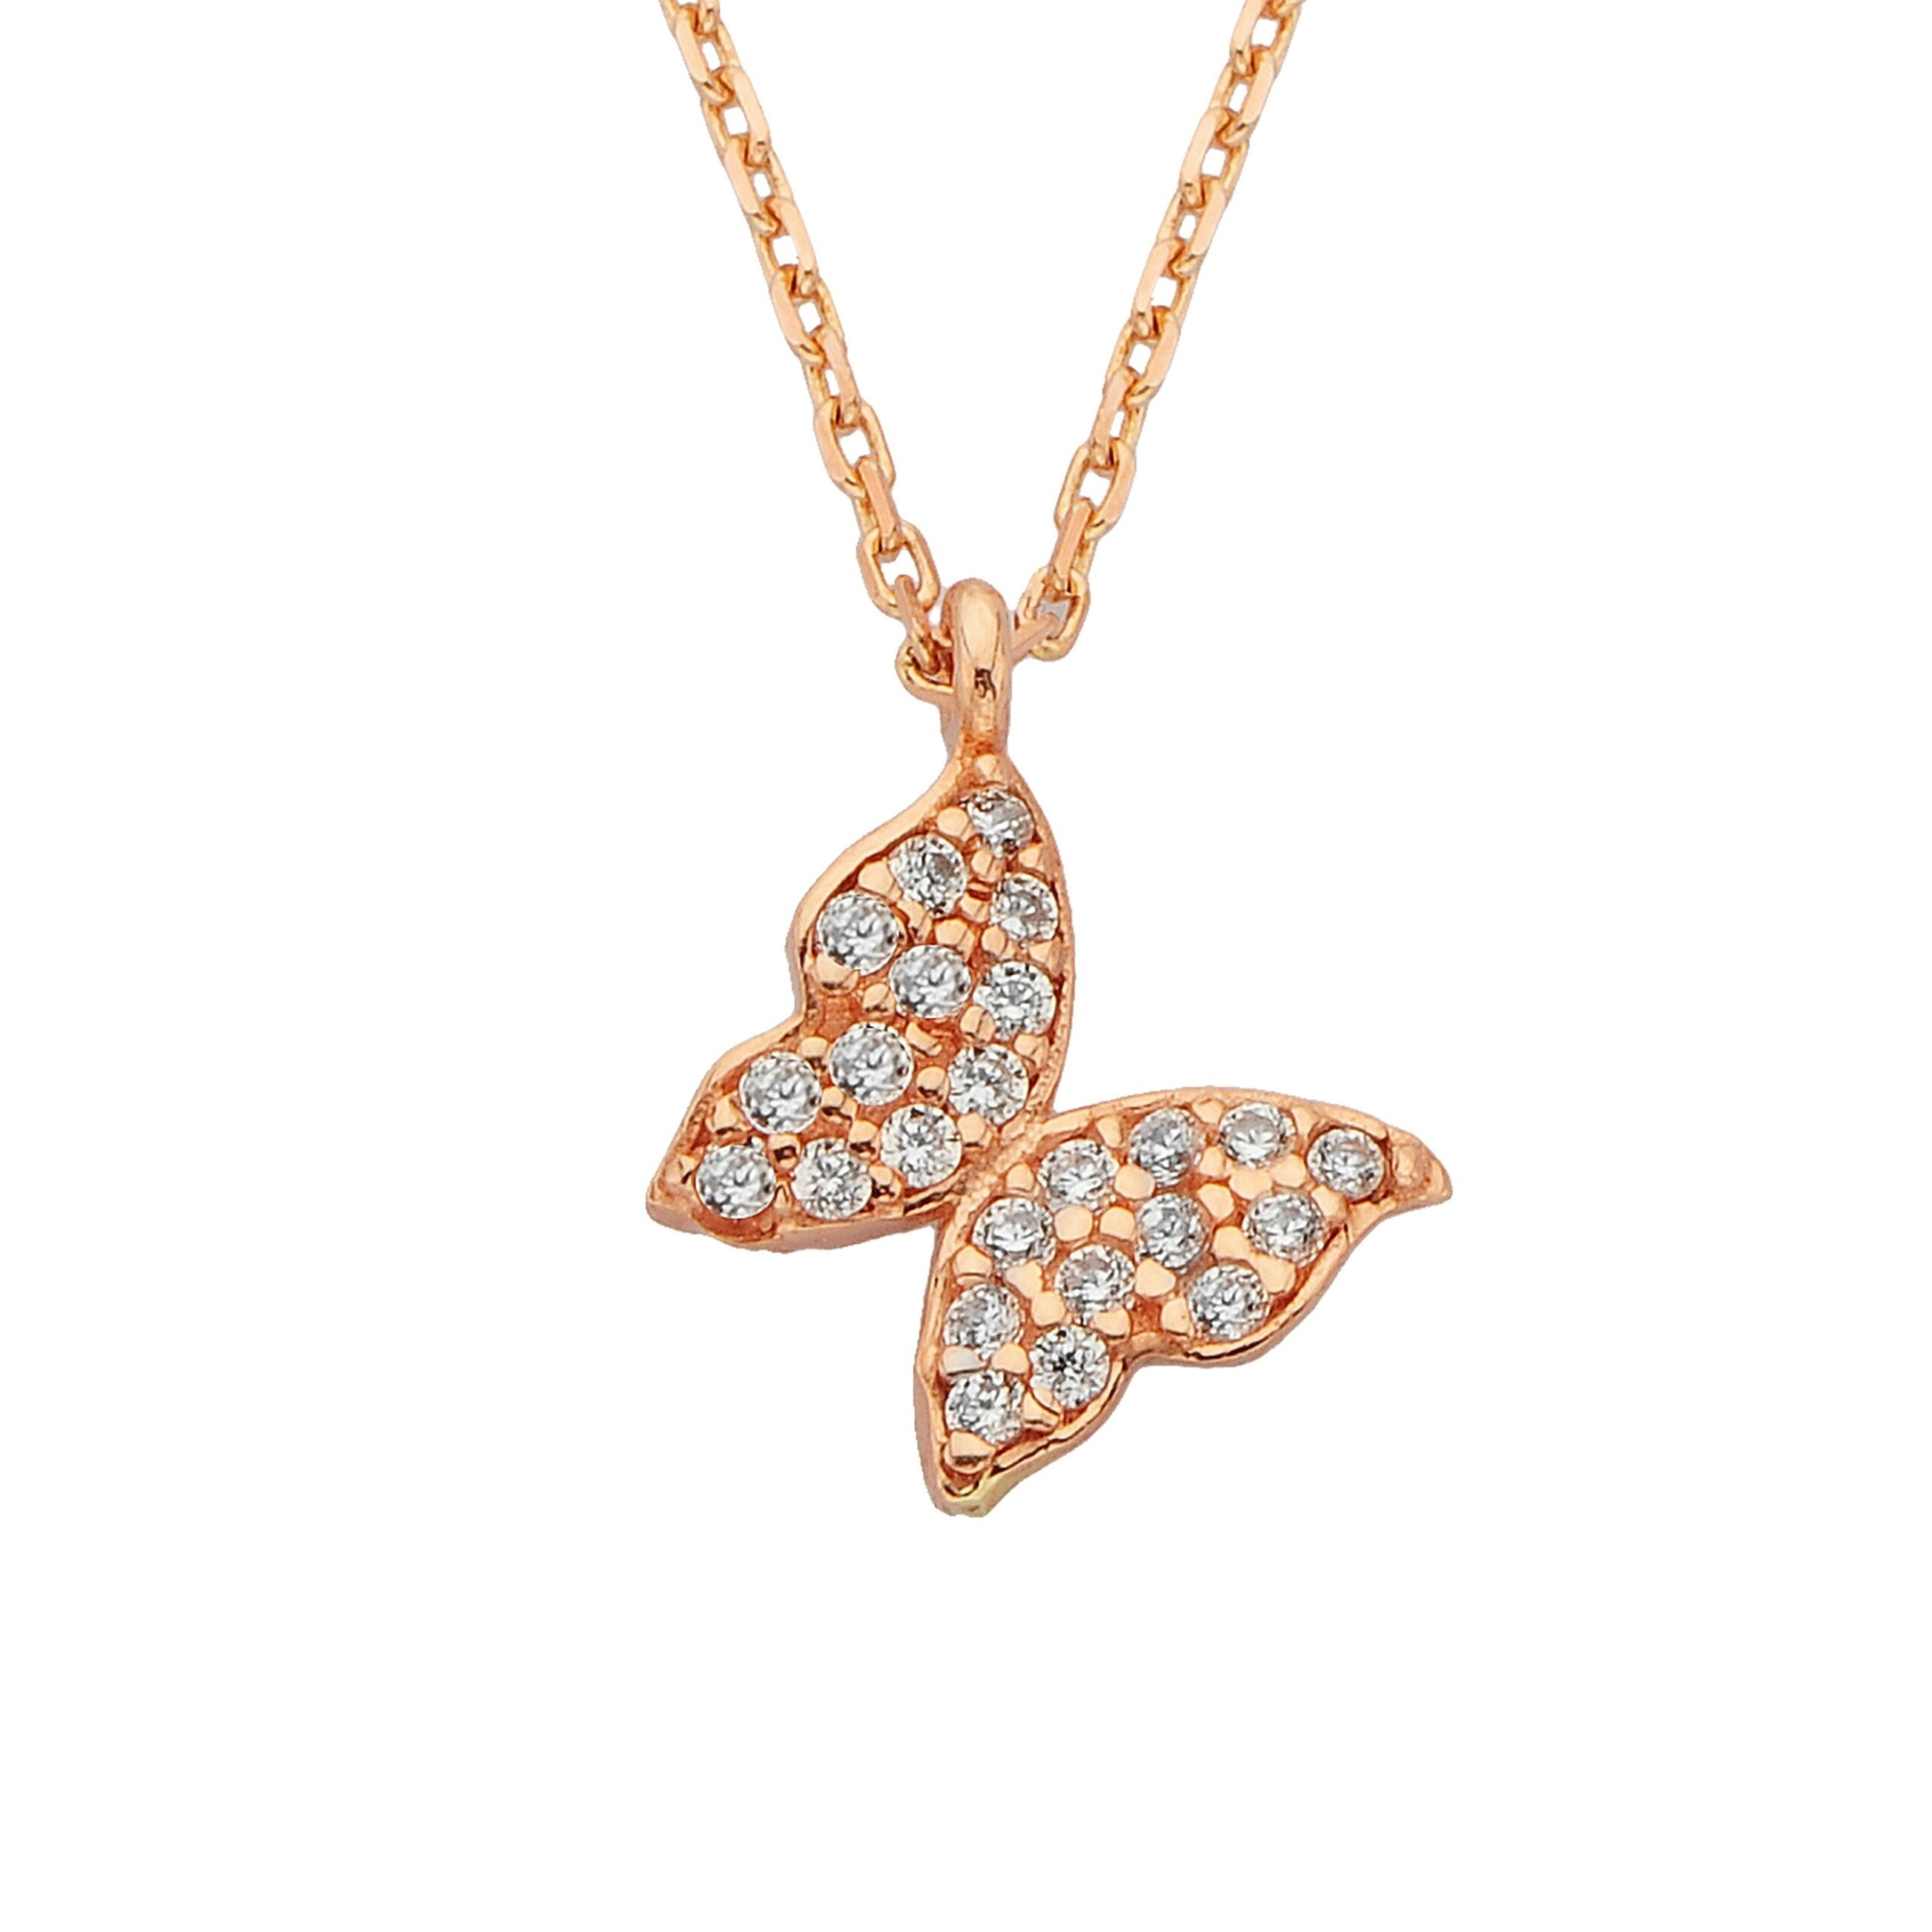 14K Real Solid Gold Butterfly Necklace | Charm Dainty Trendy CZ Pendant | Best Birthday Gift for Women Rose Gold